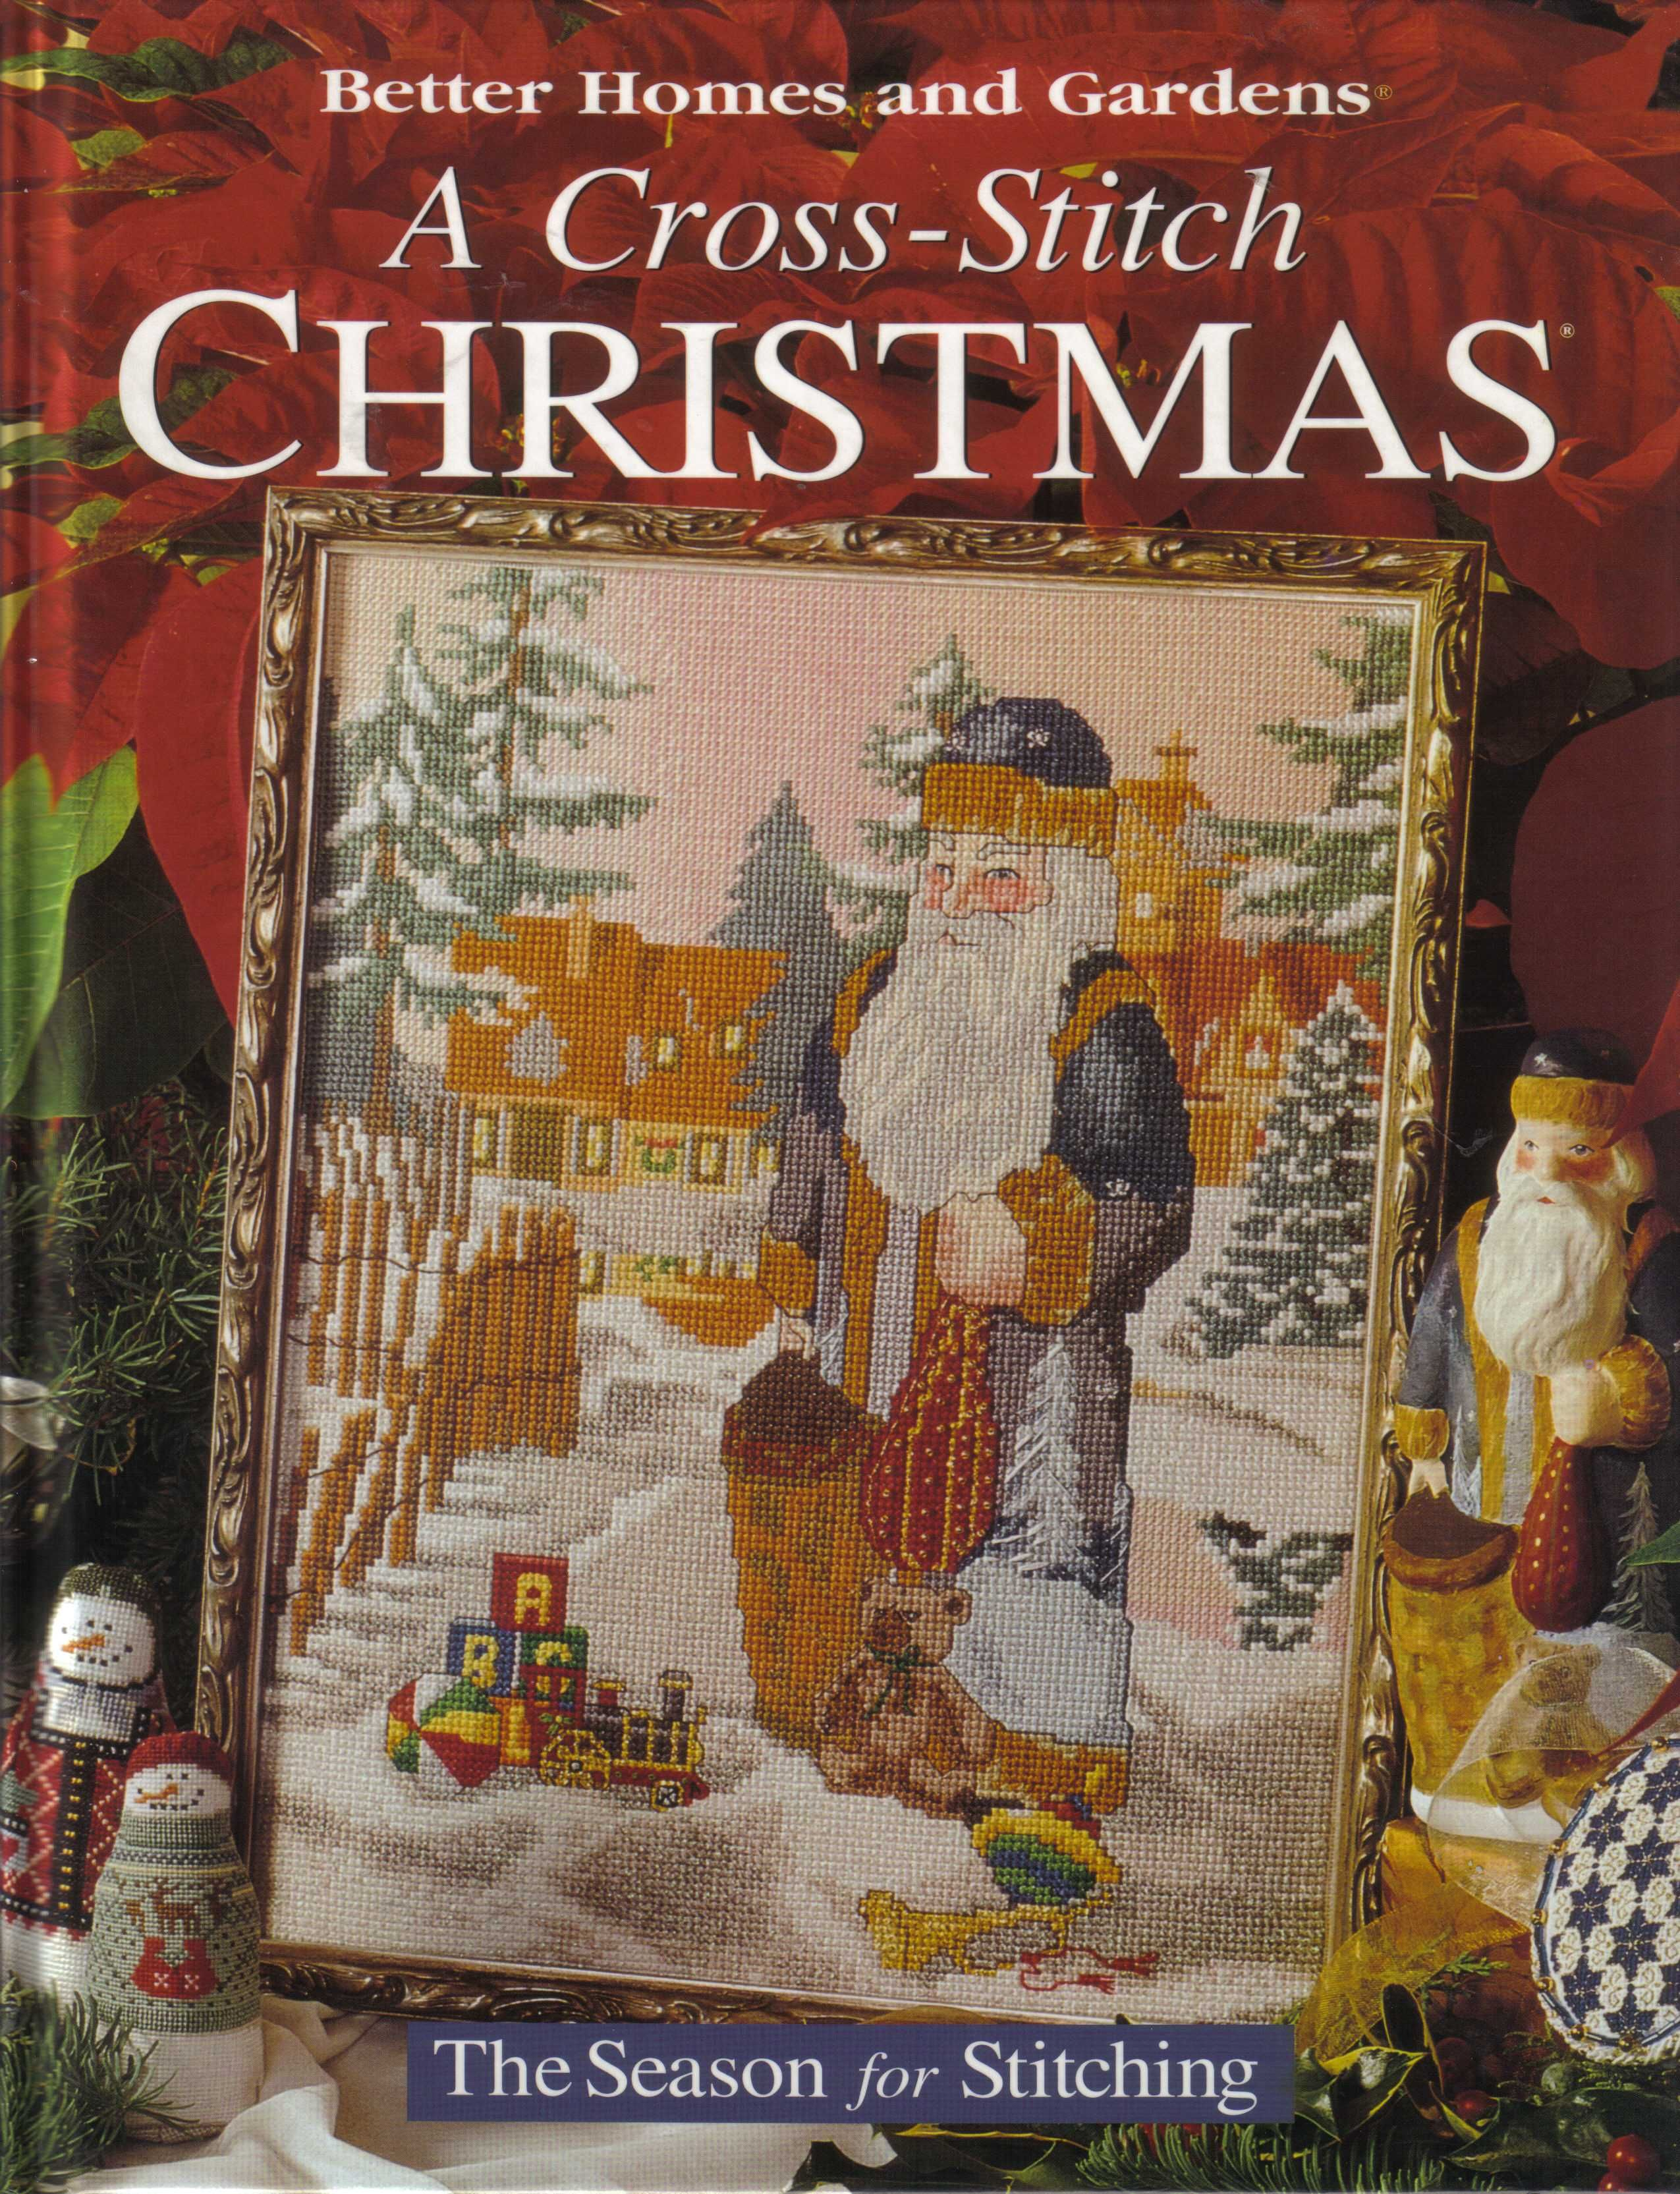 Better Homes and gardens - A cross stitch christmas | cross stitch ...